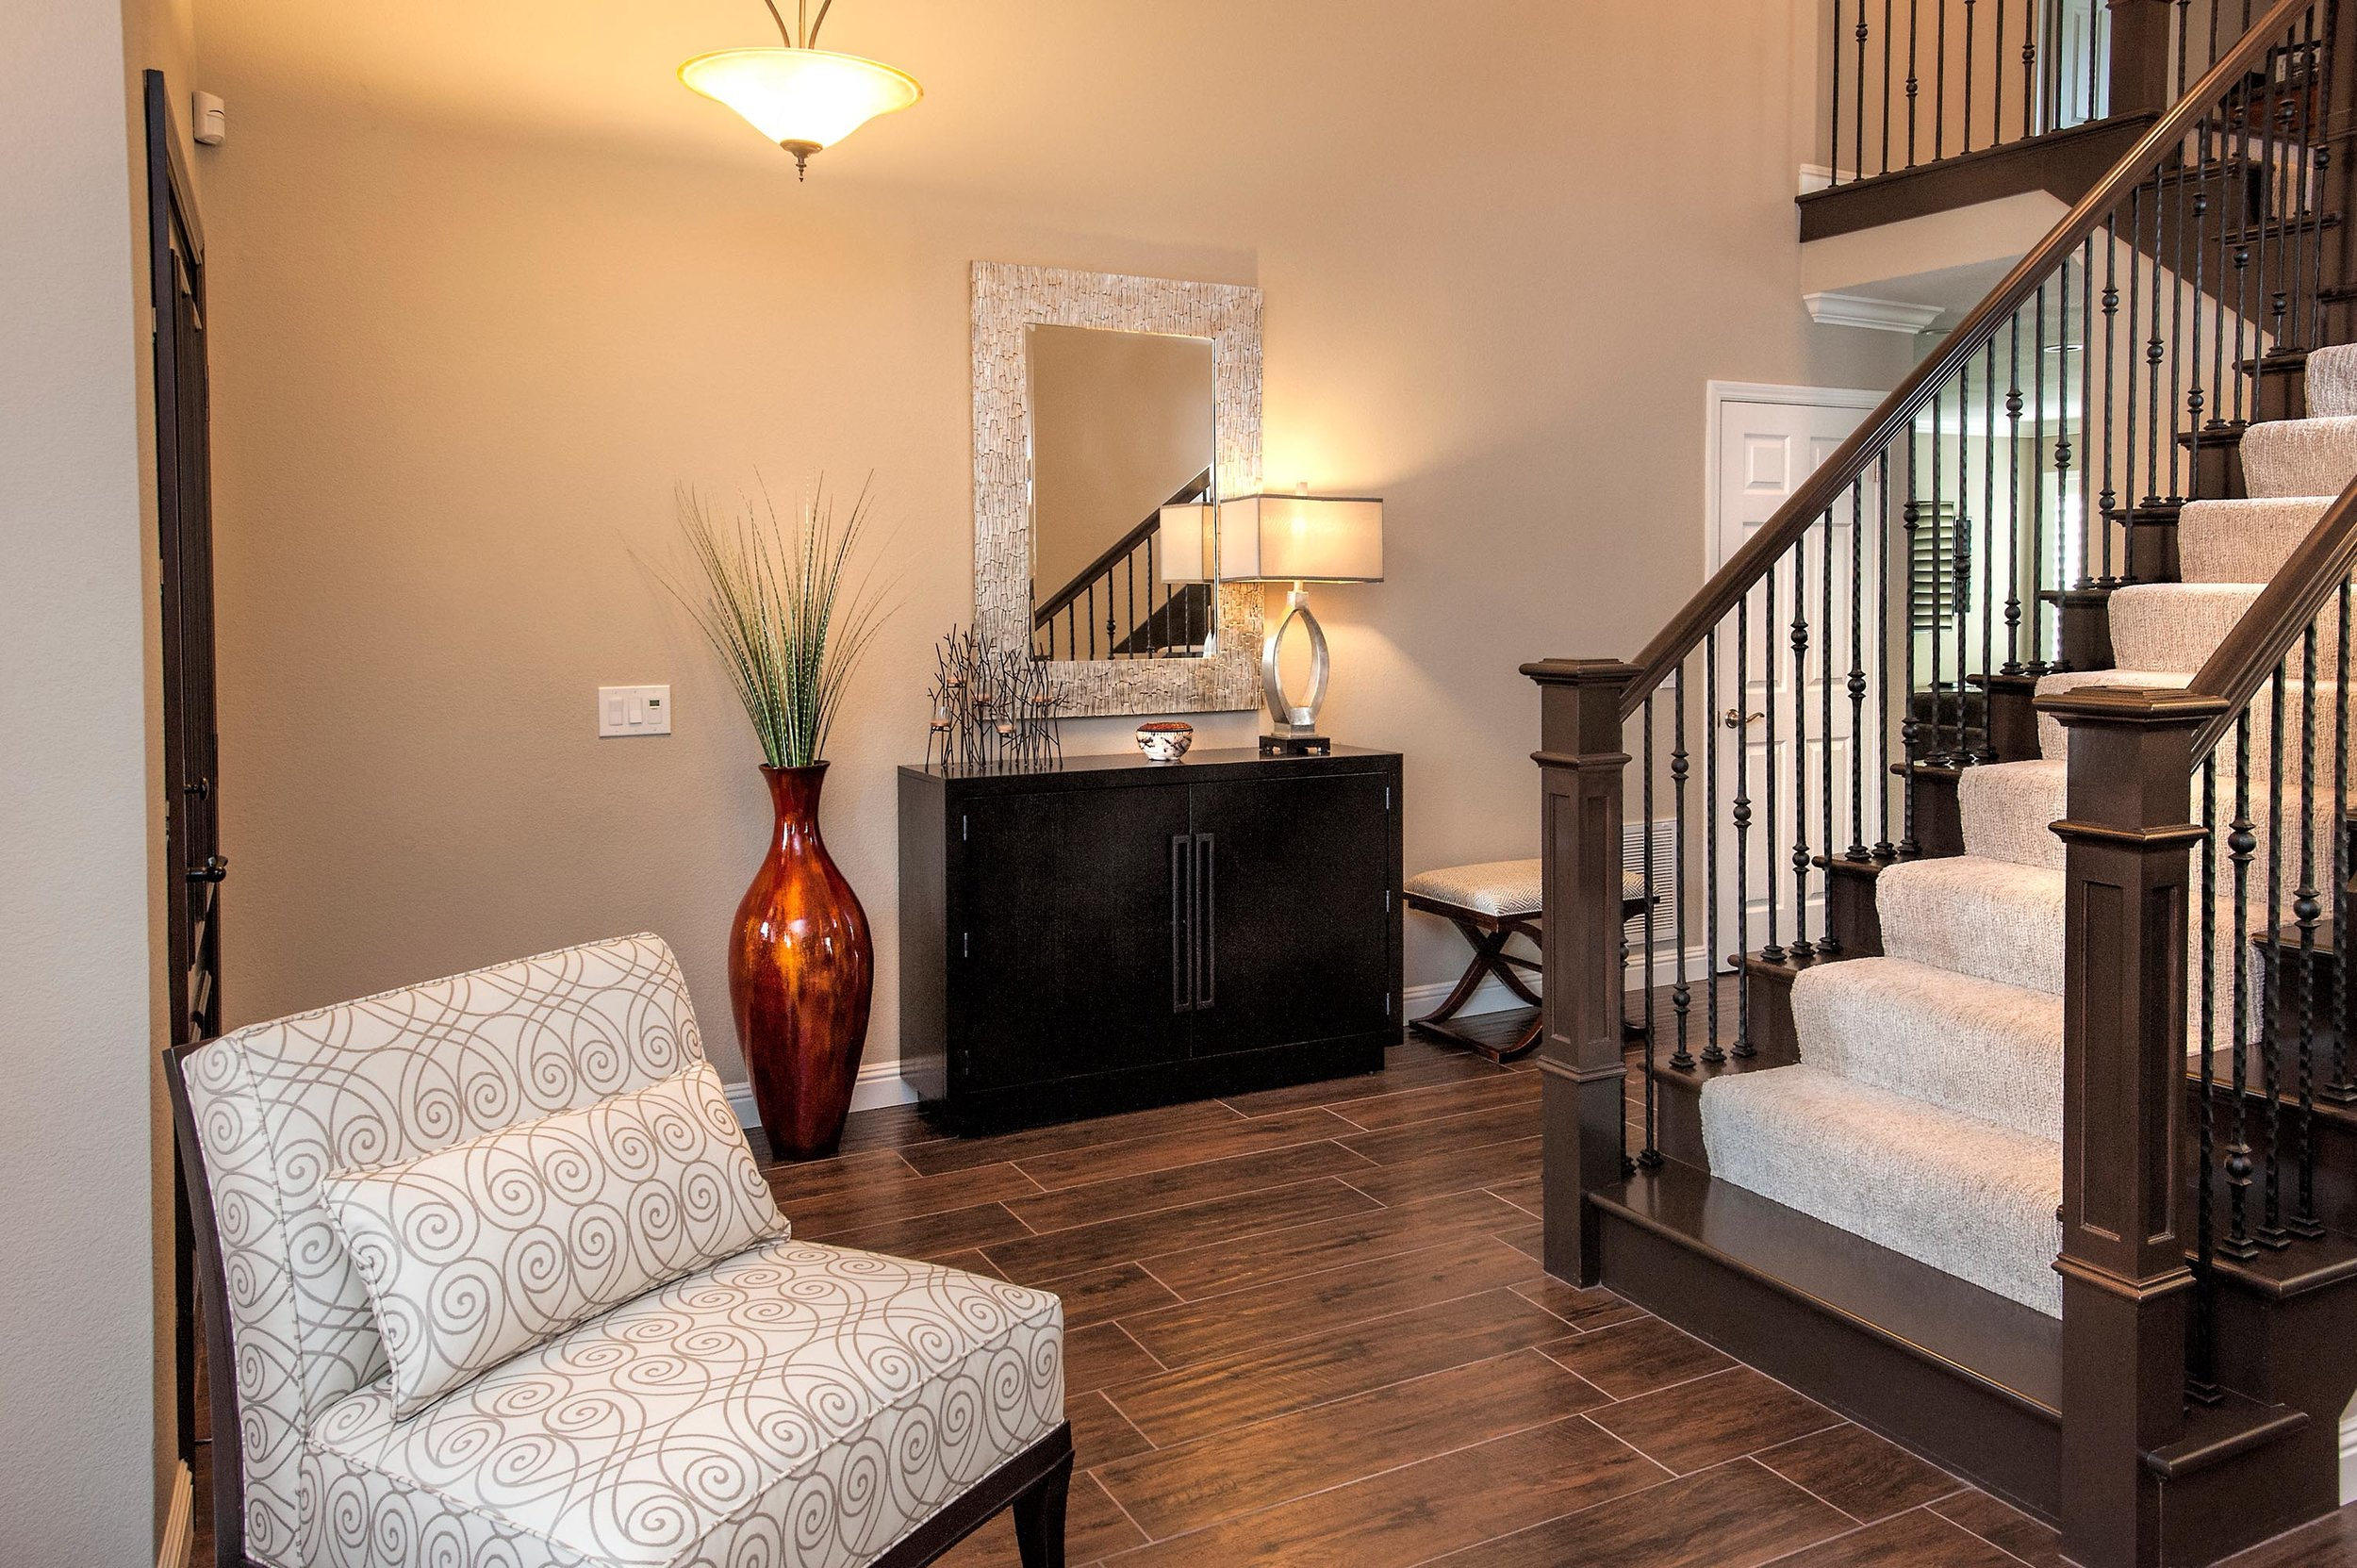 Stylish mirror, lamp, flower vase, cabinet and stairway with a sofa